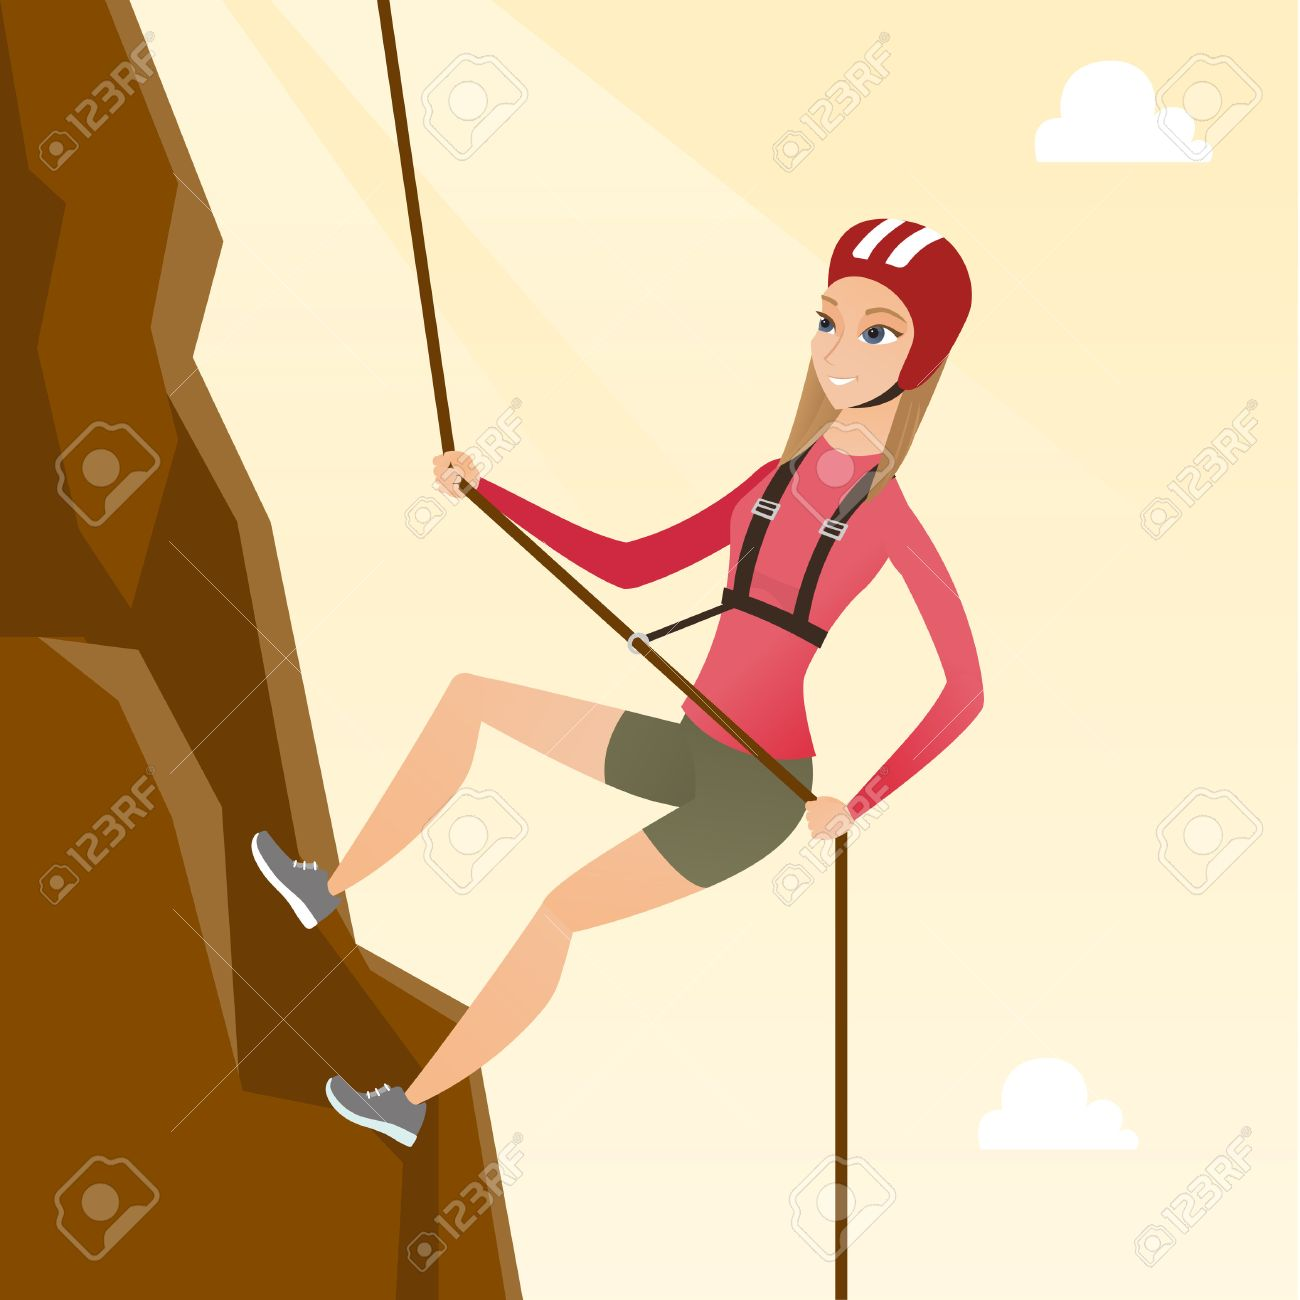 Young climber in protective helmet climbing a mountain. Caucasian smiling woman climbing a mountain with a rope. Sport and leisure activity concept. Vector flat design illustration. Square layout. - 81273417